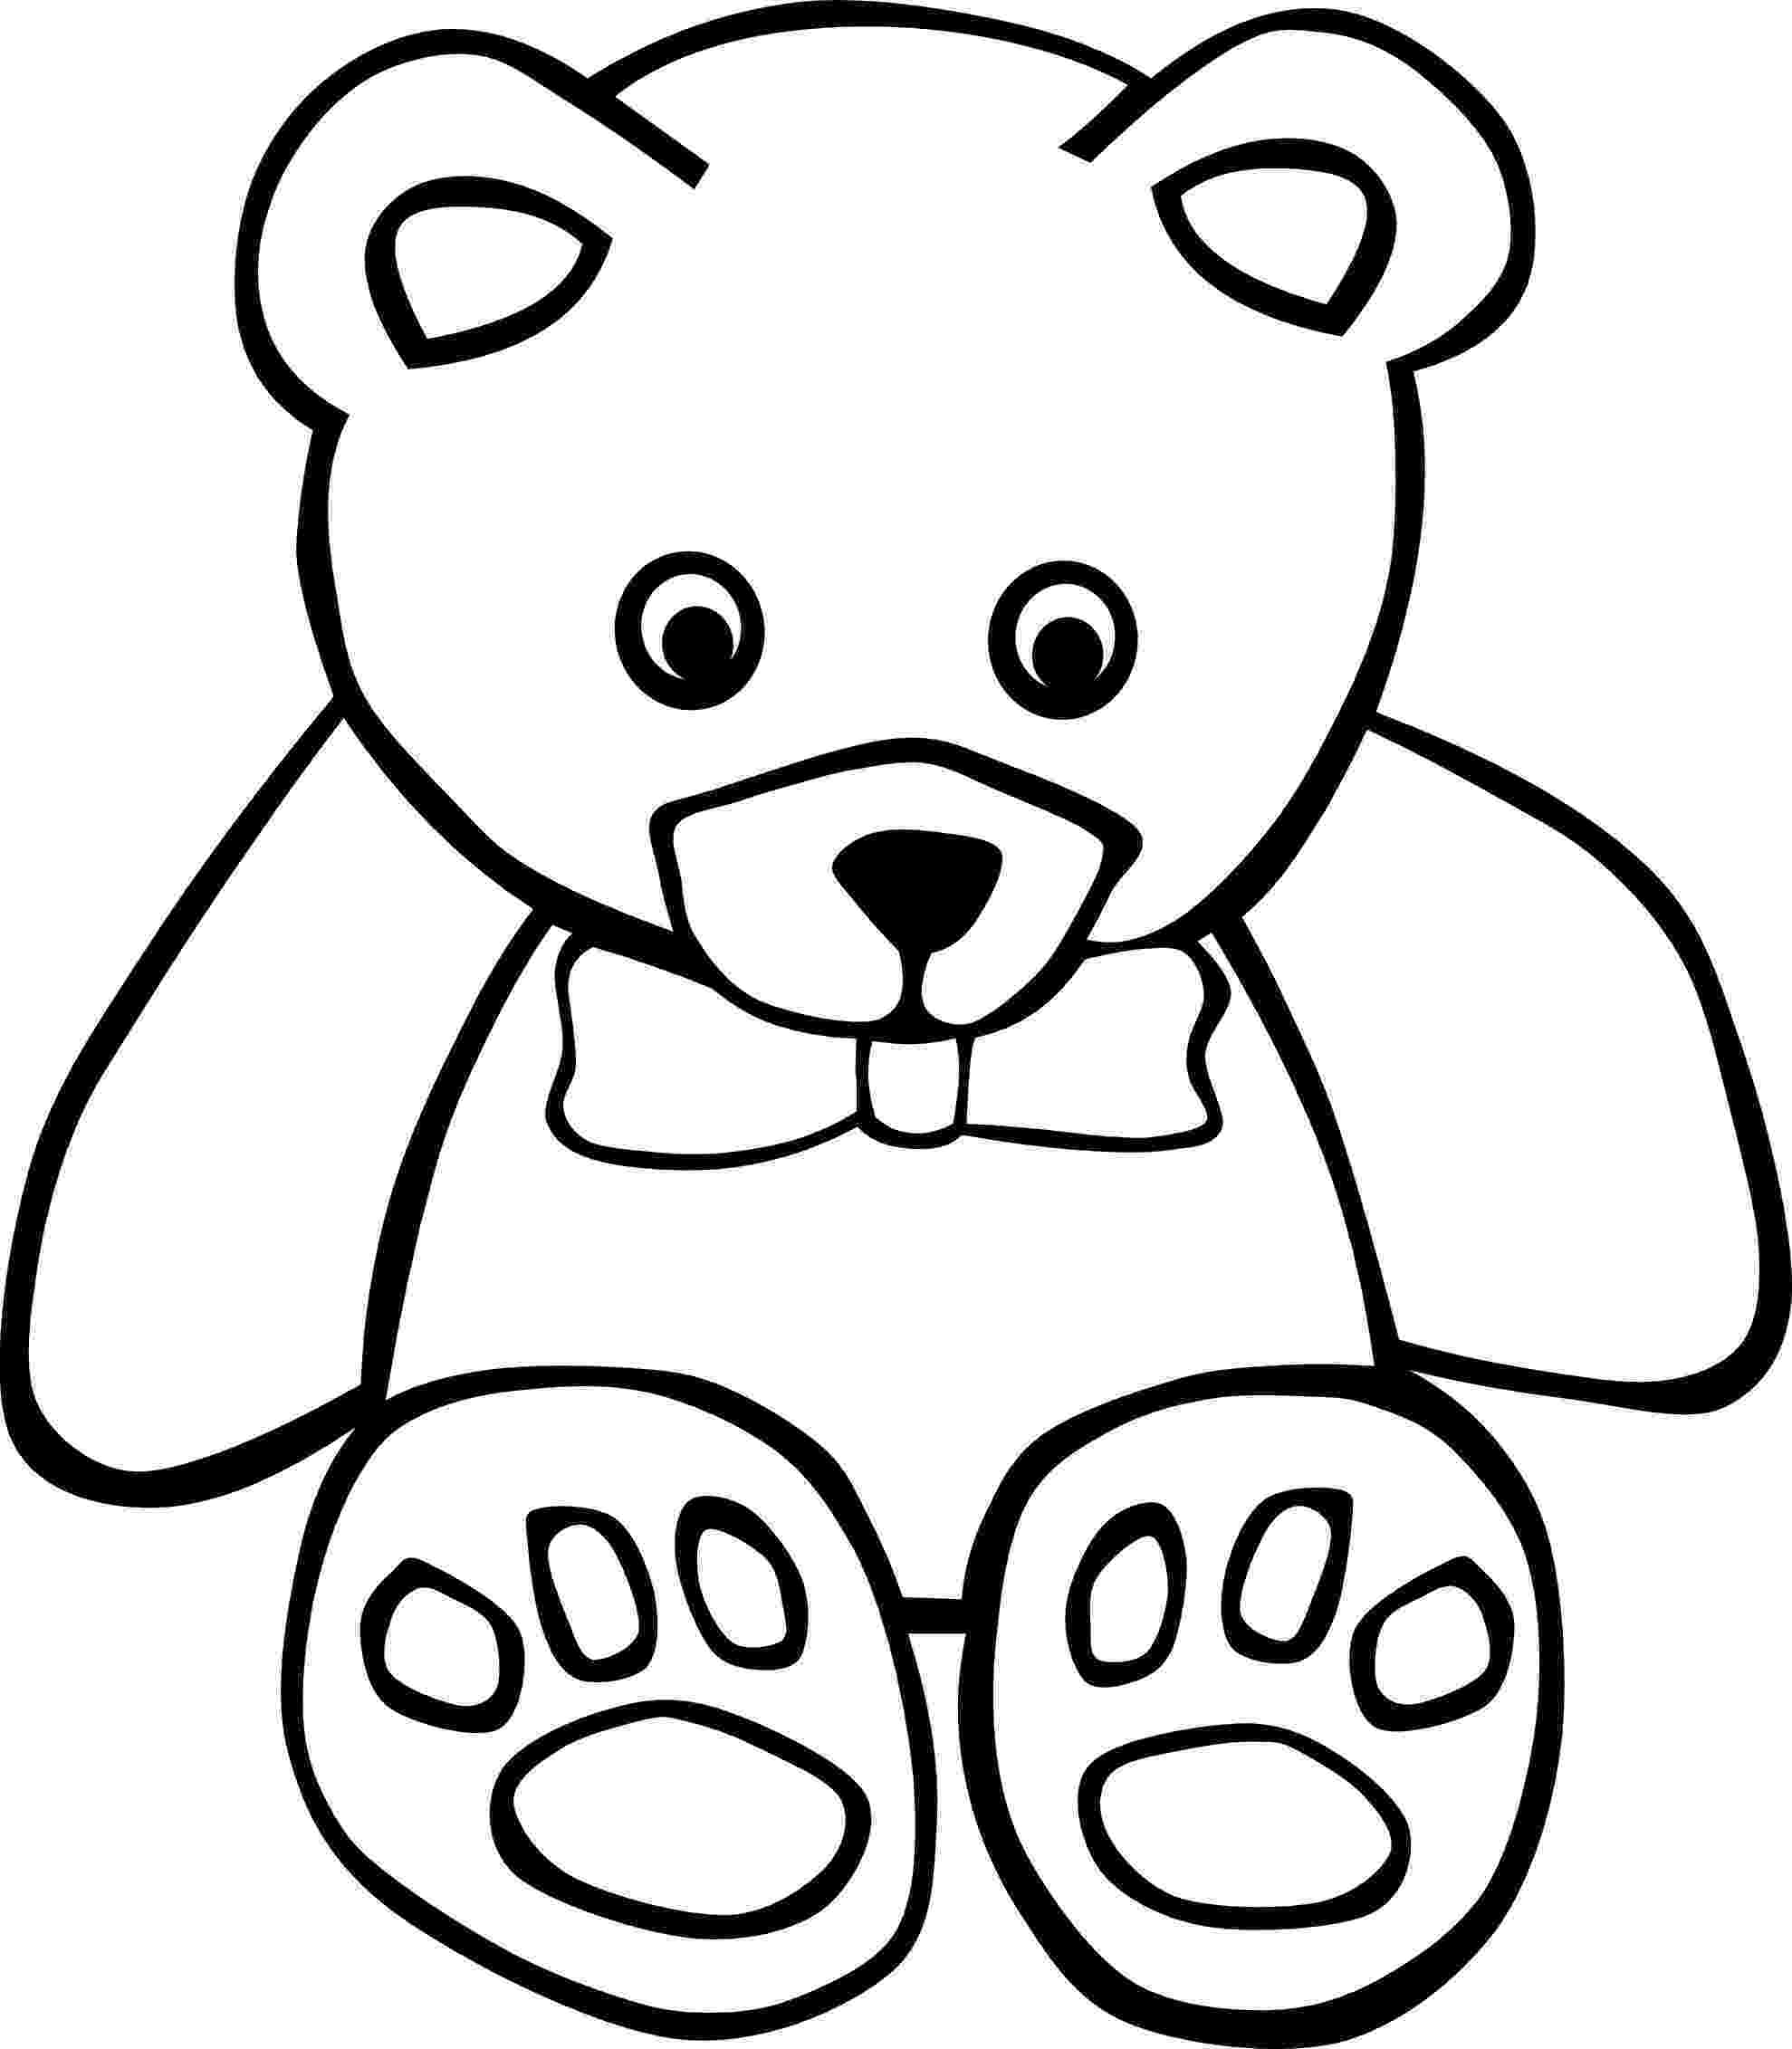 teddy to colour free printable teddy bear coloring pages for kids to colour teddy